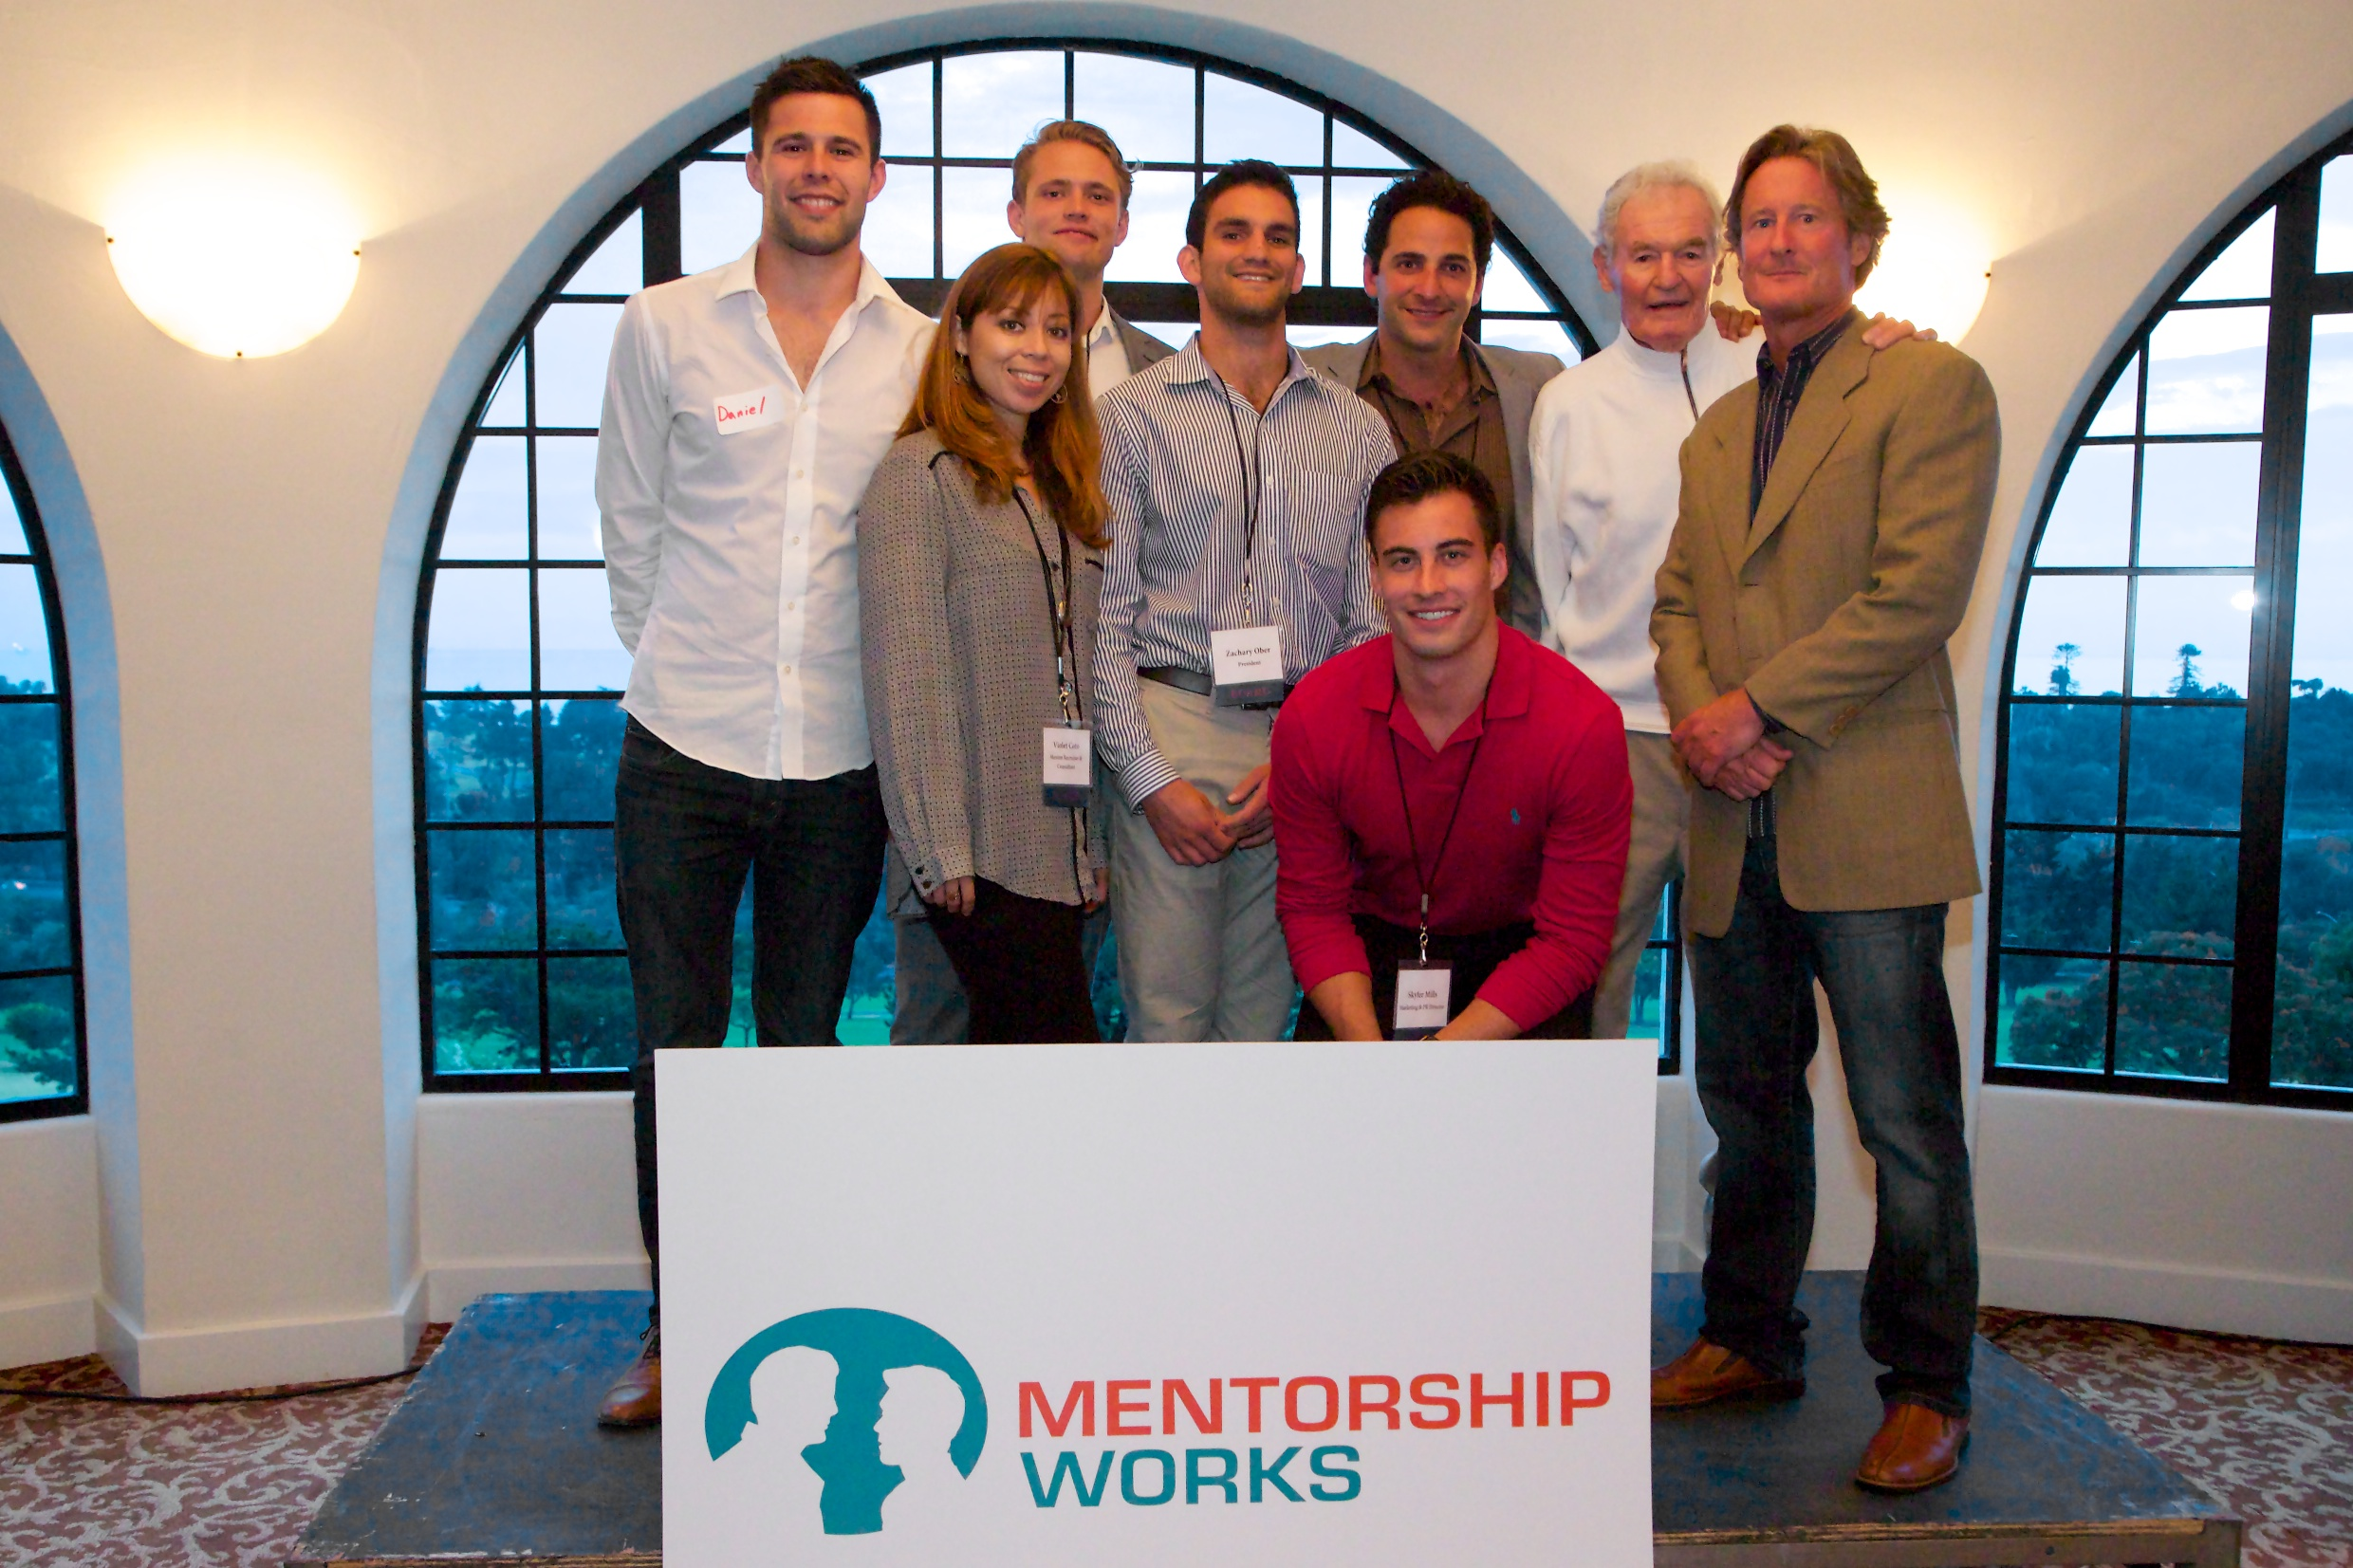 Mentorship Works Board and Kevin O'Connor group photo